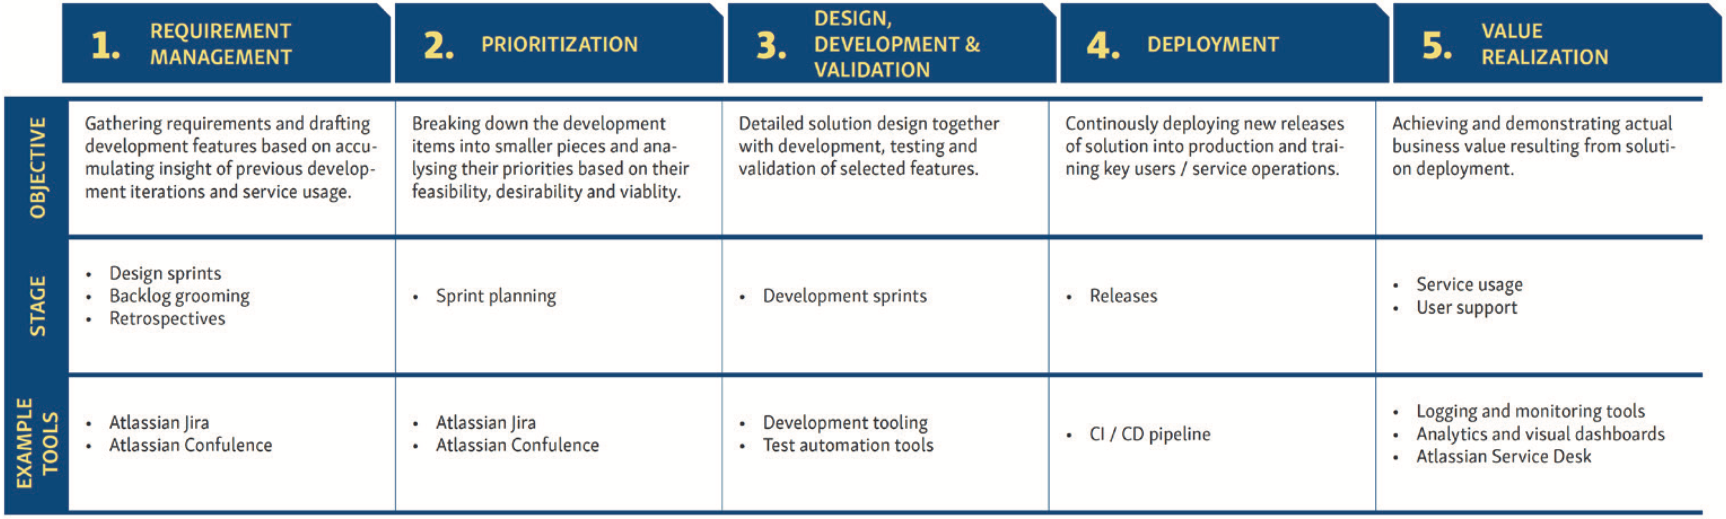 The acceptance of change and the desire to develop and learn are at the core of Agile, but Agile development processes vary from one situation to the next. The development of a new solution or service typically involves five stages.